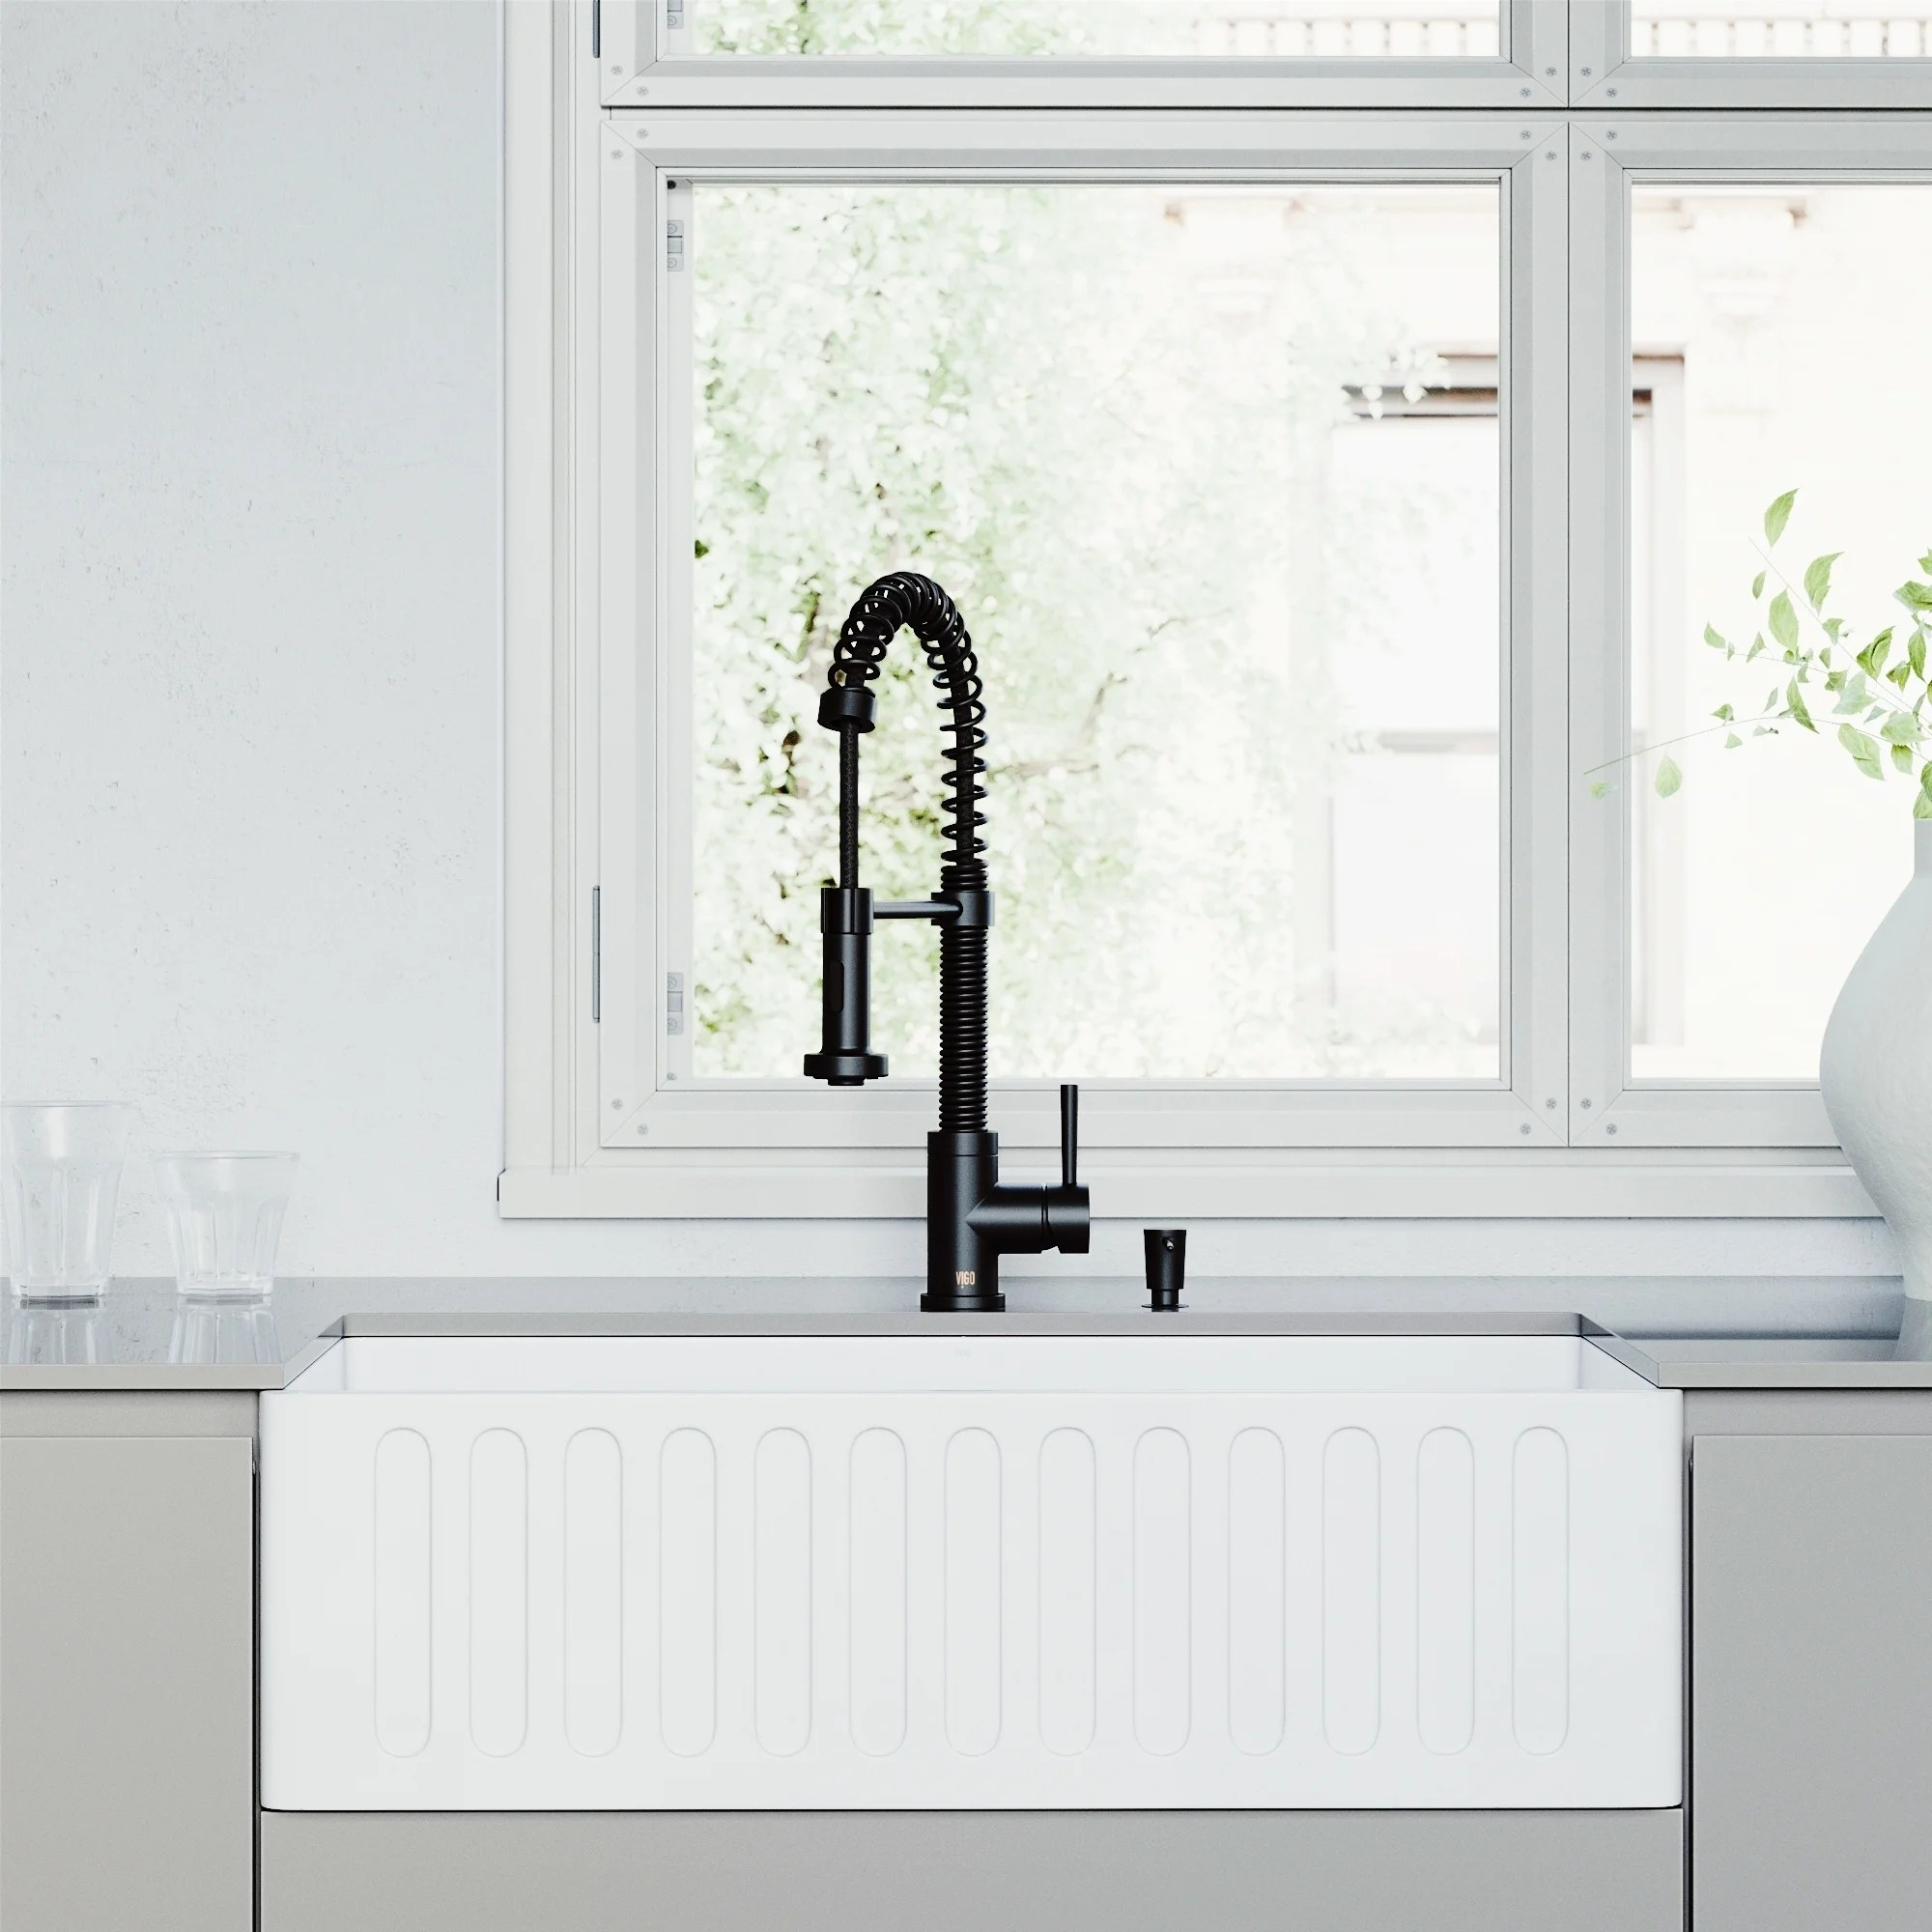 vigo all in one 33 matte stone white apron front single bowl farmhouse kitchen sink with pull down faucet in matte black